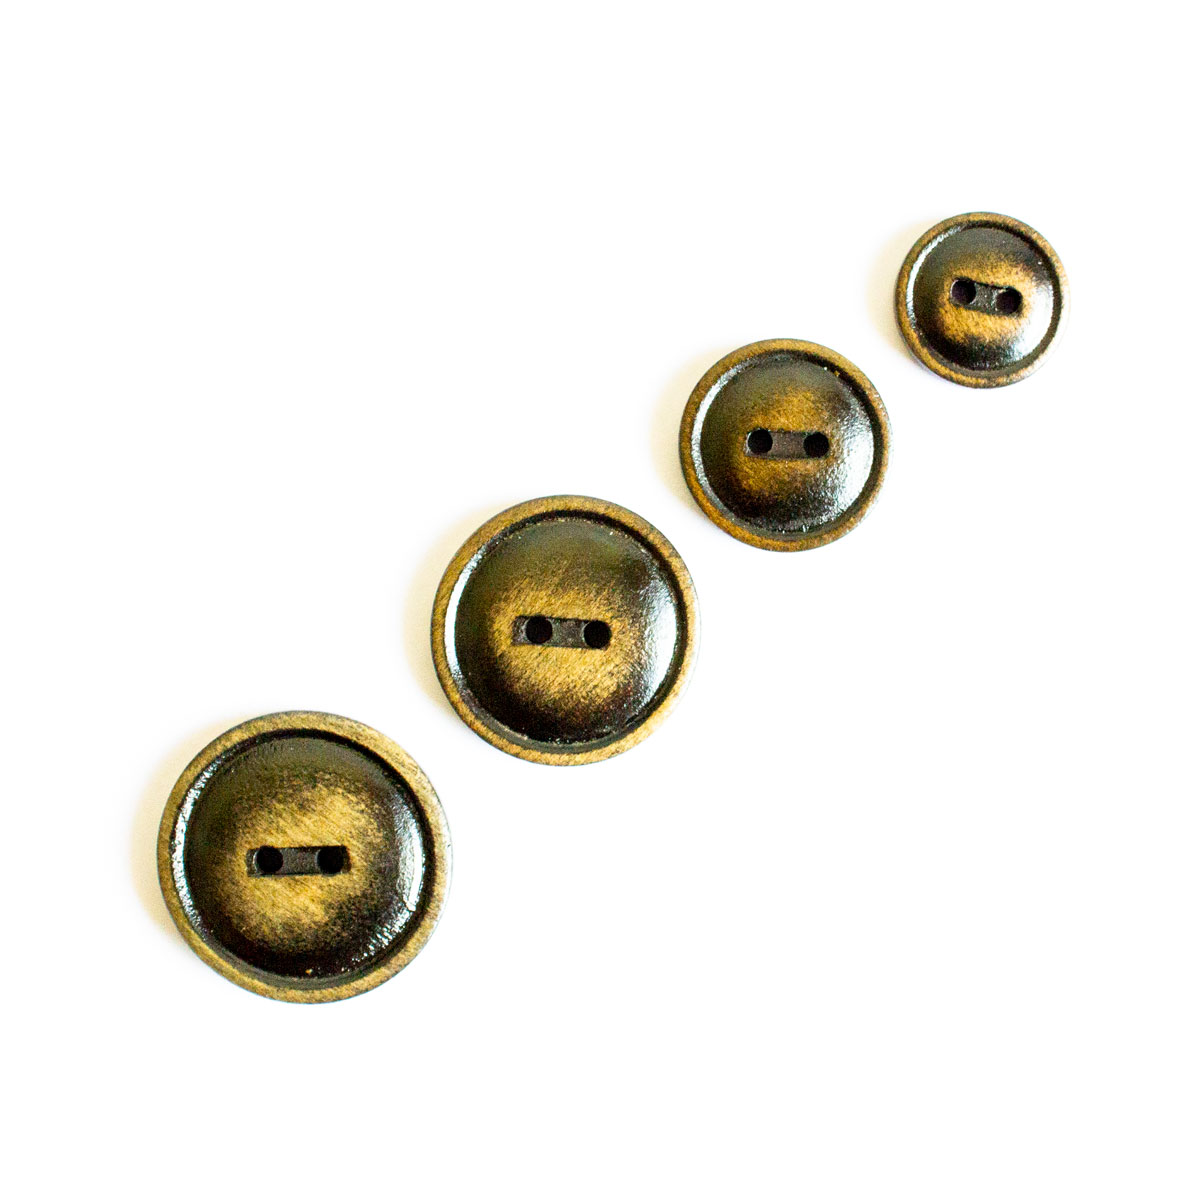 2 HOLE WOOD BUTTON W/ PATINA LOOK